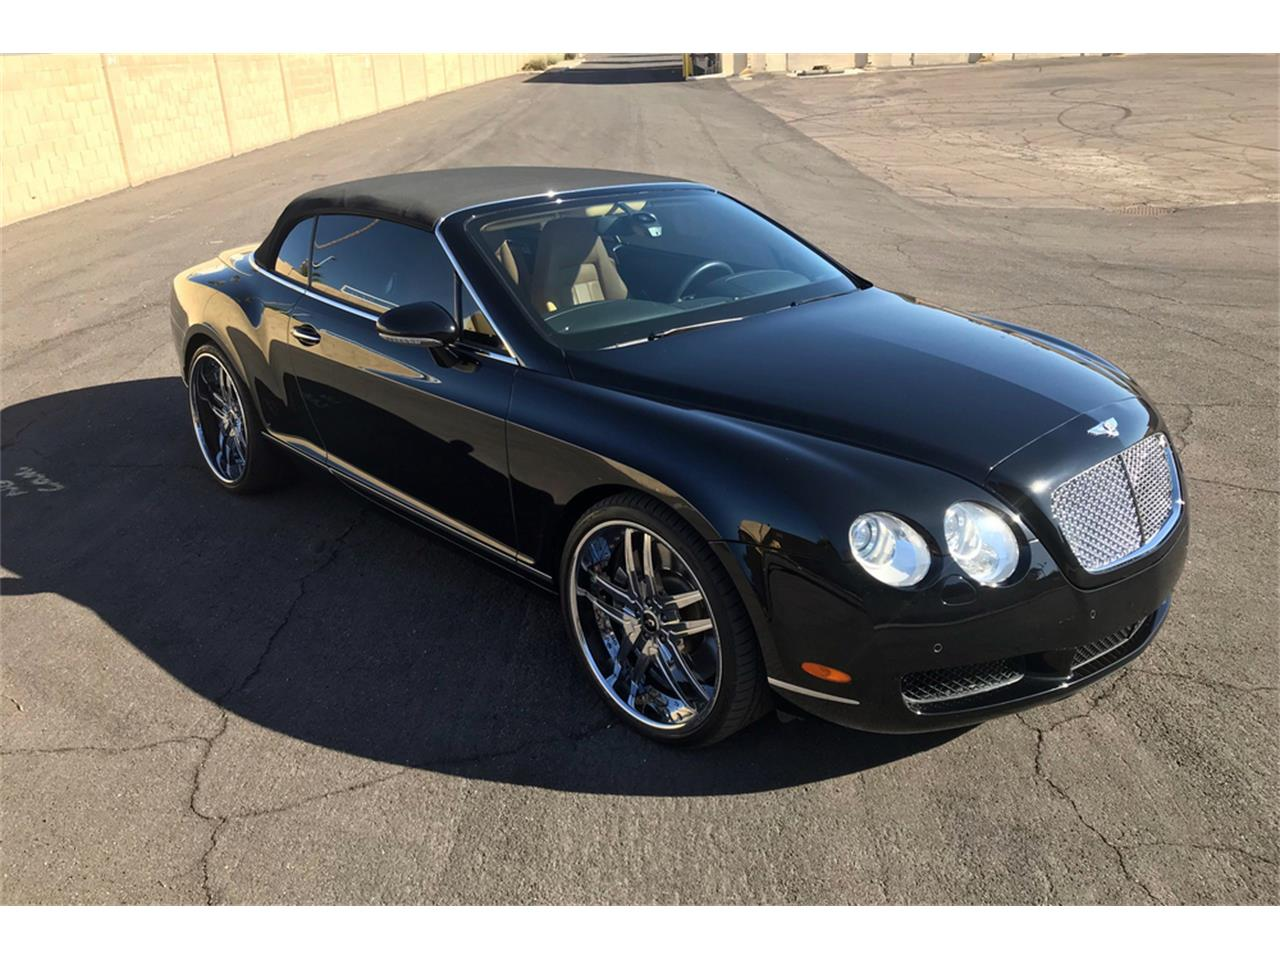 Large Picture of 2007 Continental GTC Auction Vehicle Offered by Barrett-Jackson - QCXB